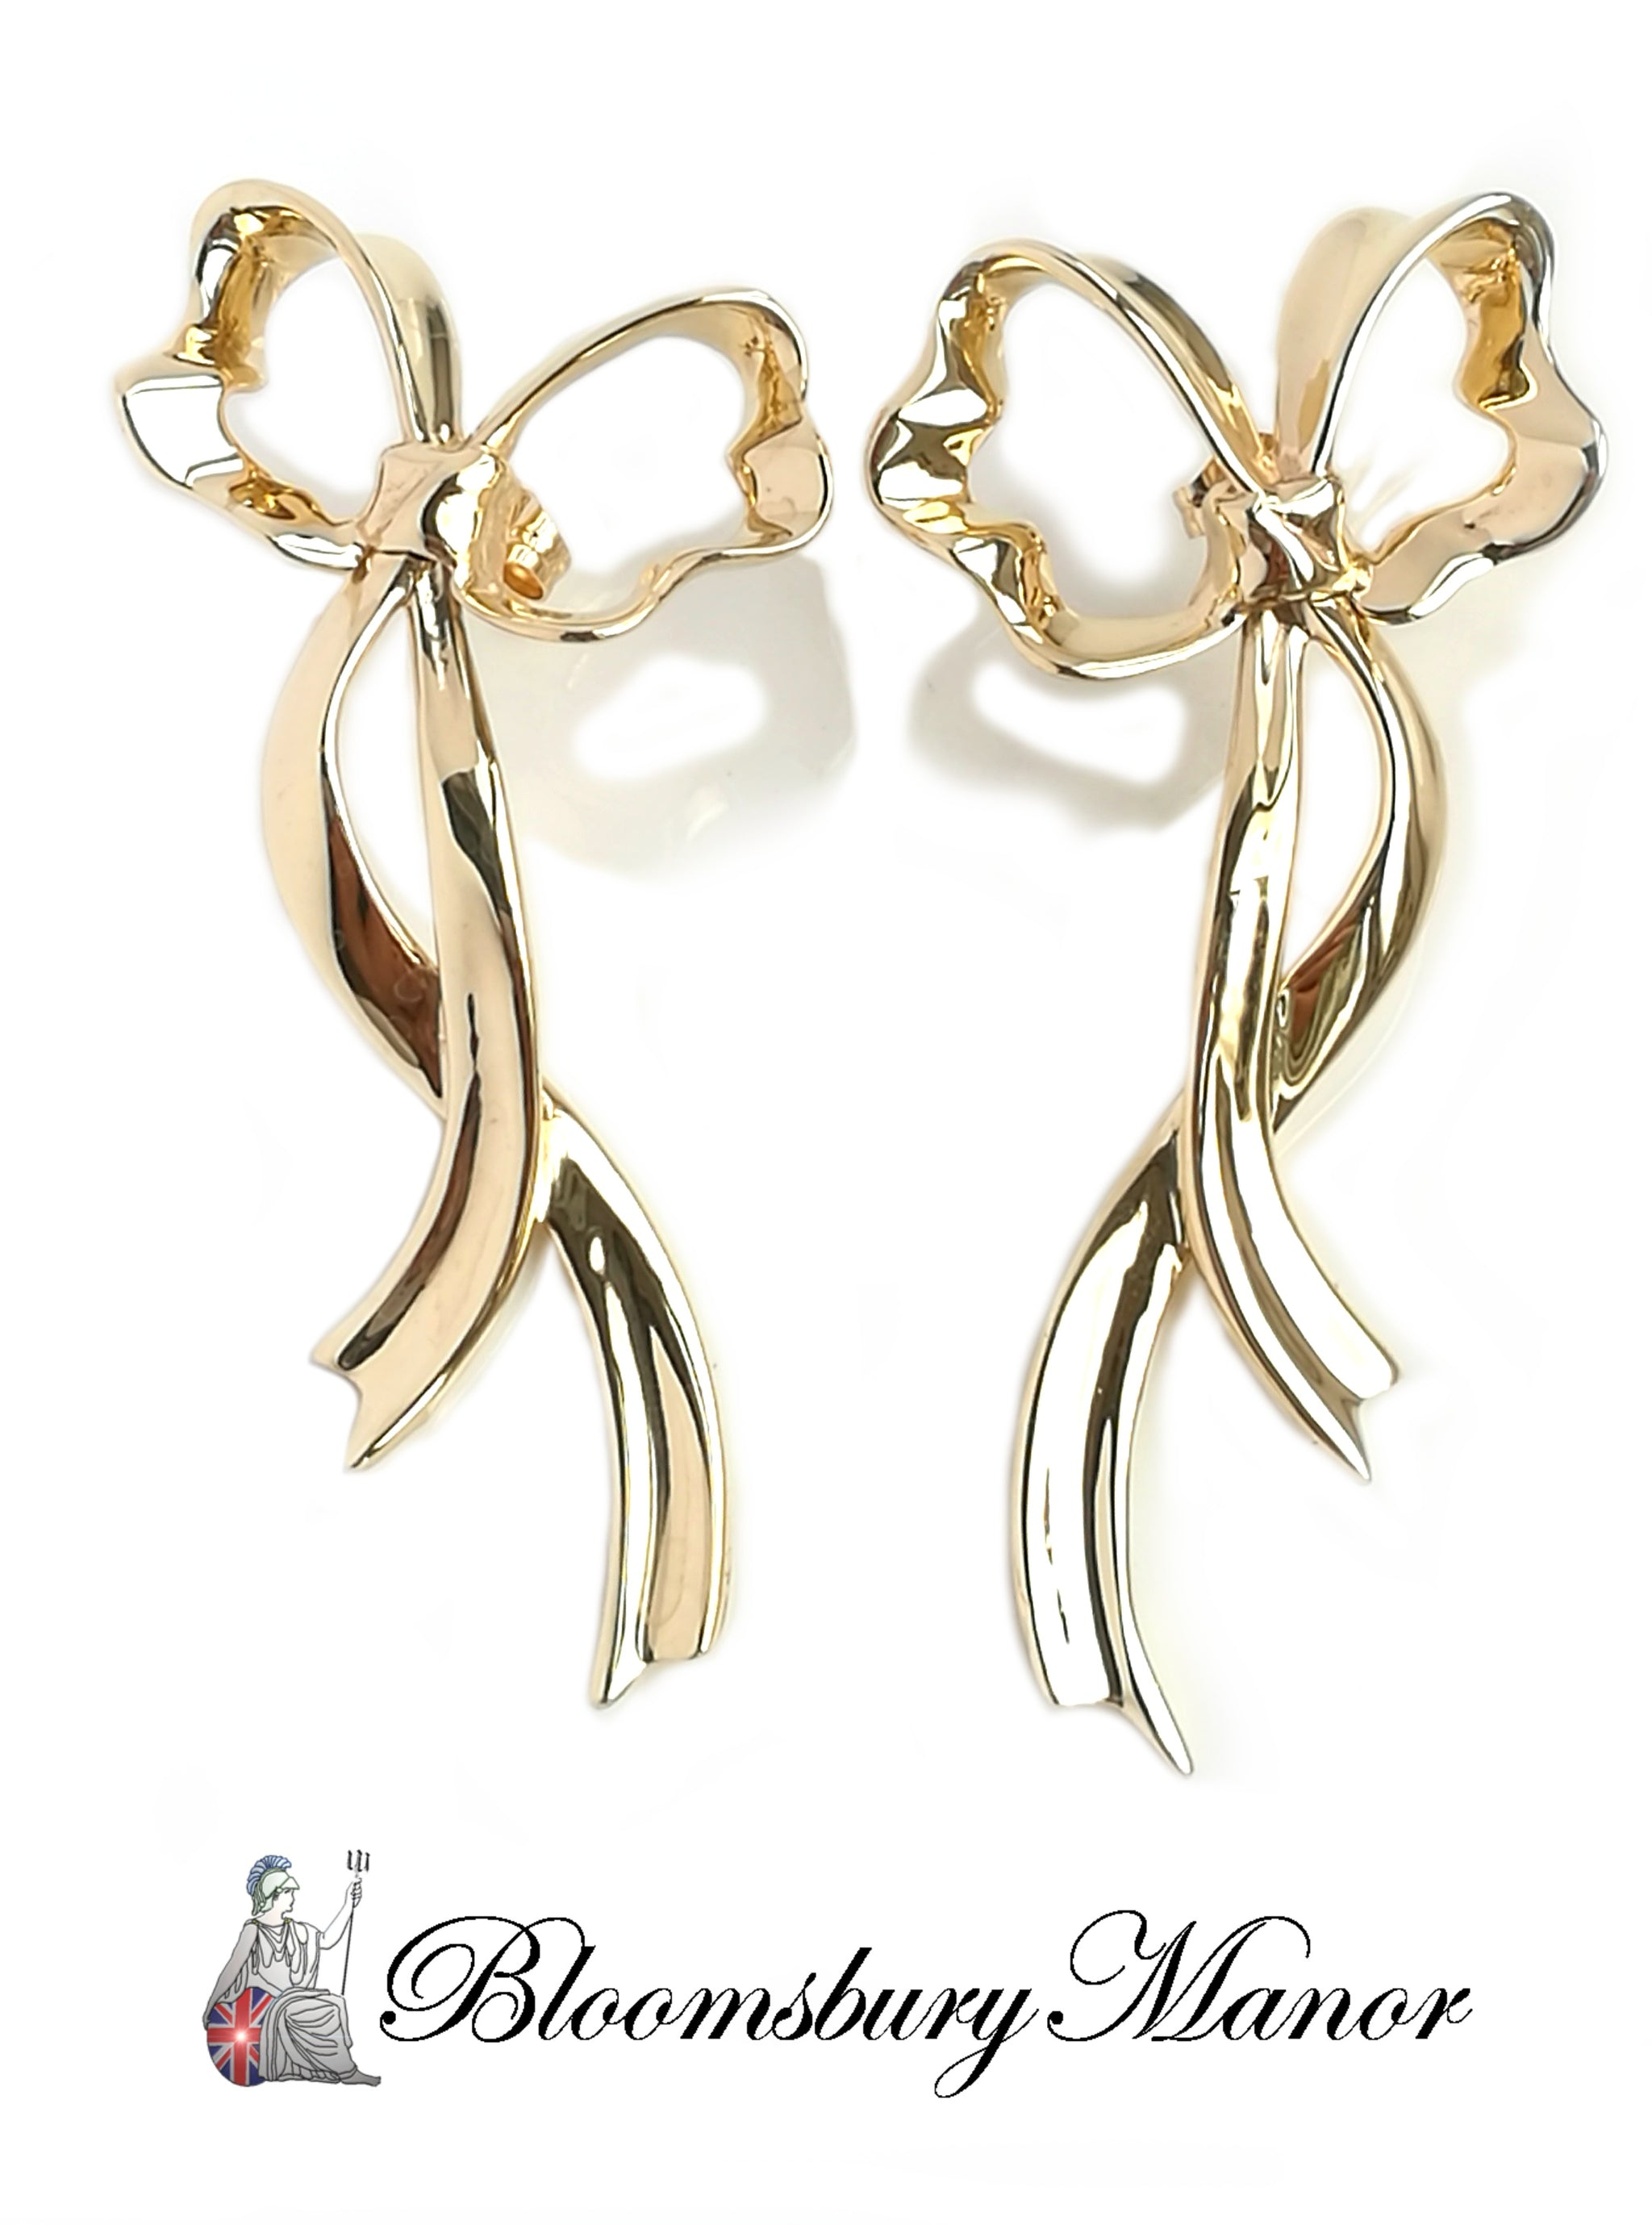 Pre-owned Second Hand Tiffany & Co Ribbon Bow Earrings 18k Gold